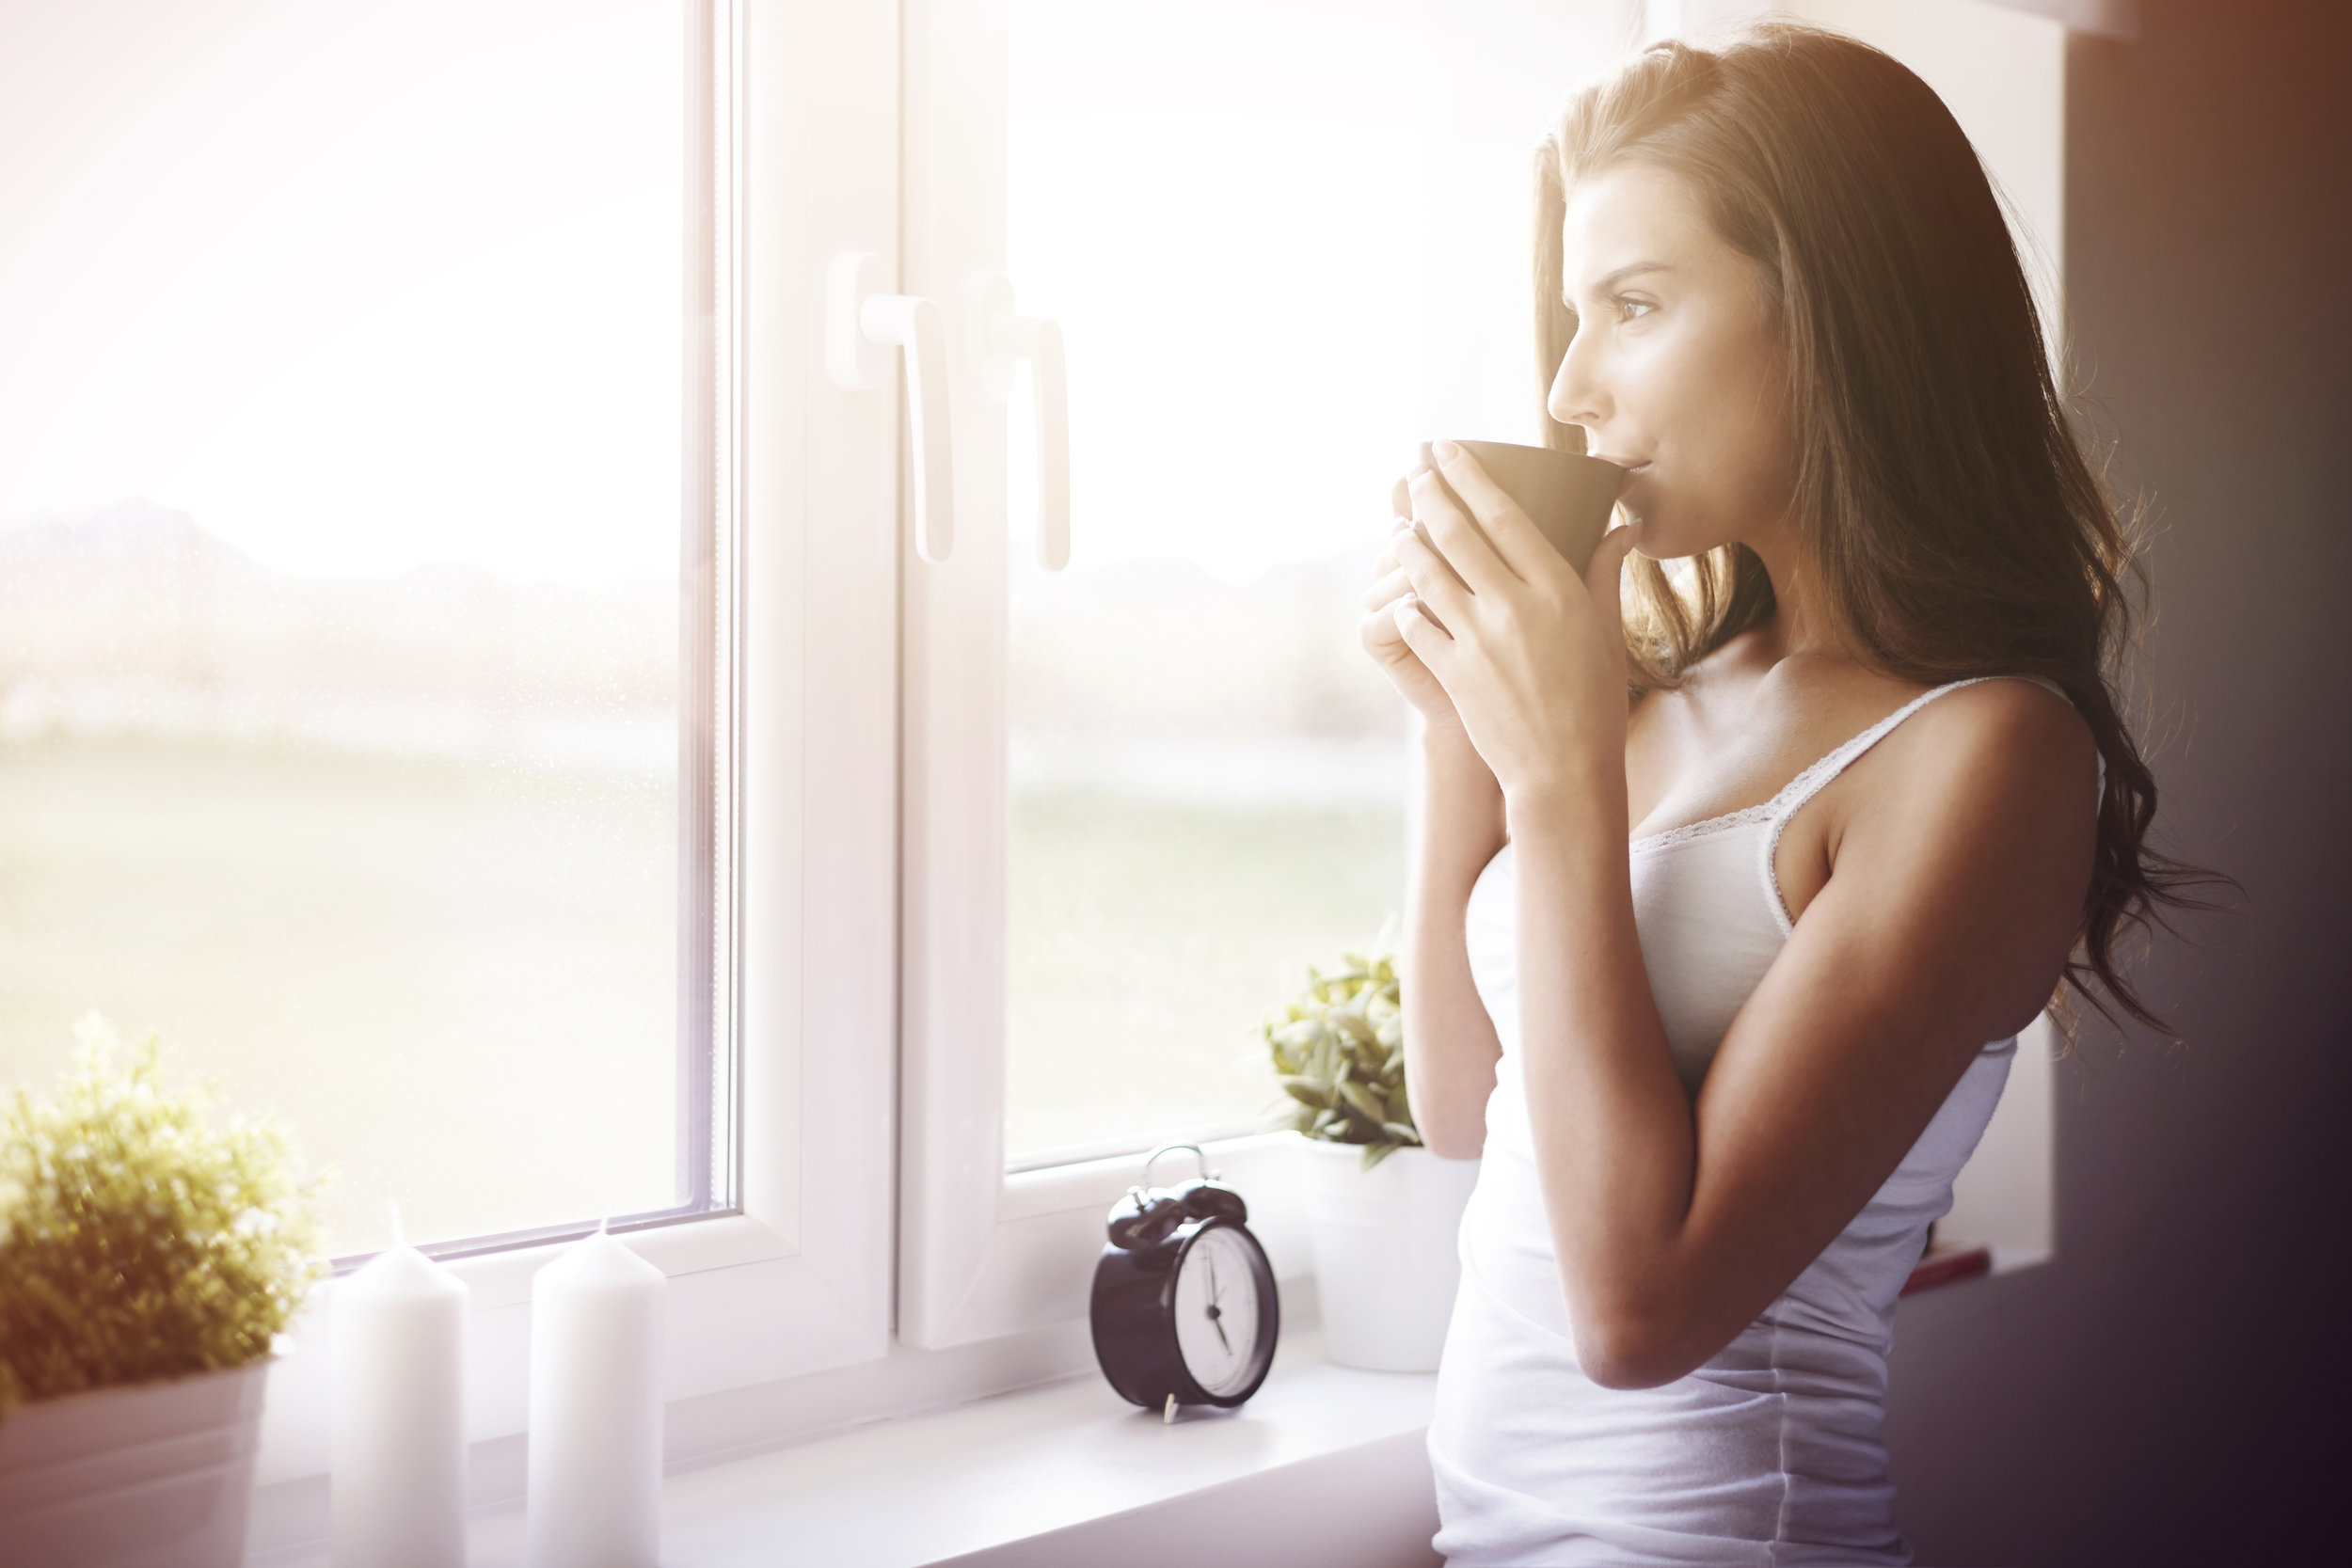 Daily Morning Practices for More Calming Energy